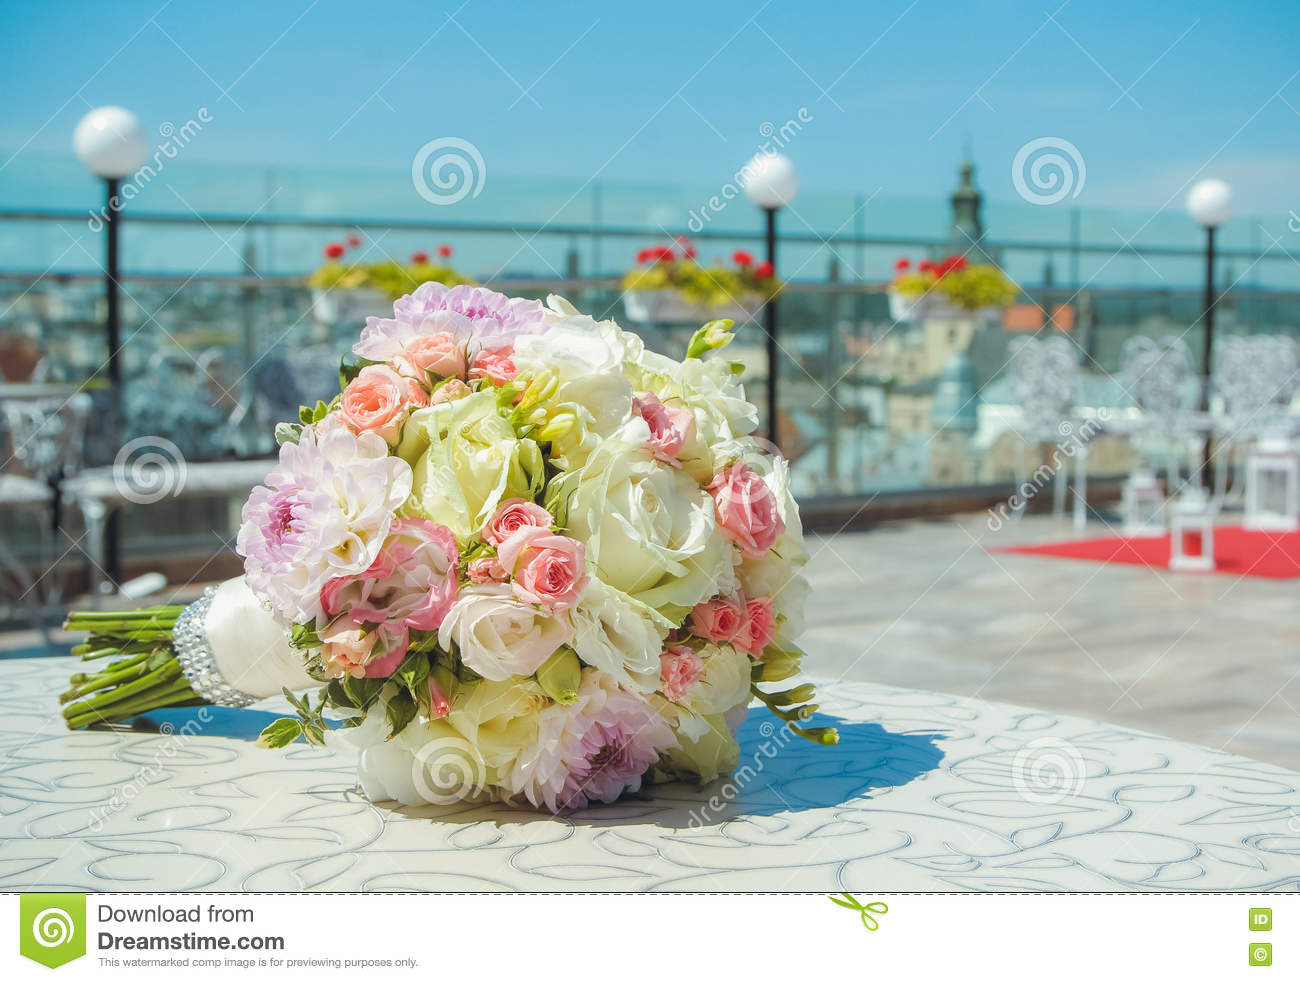 Wedding Bridal Bouquet Colorful Flowers Pink White Roses And